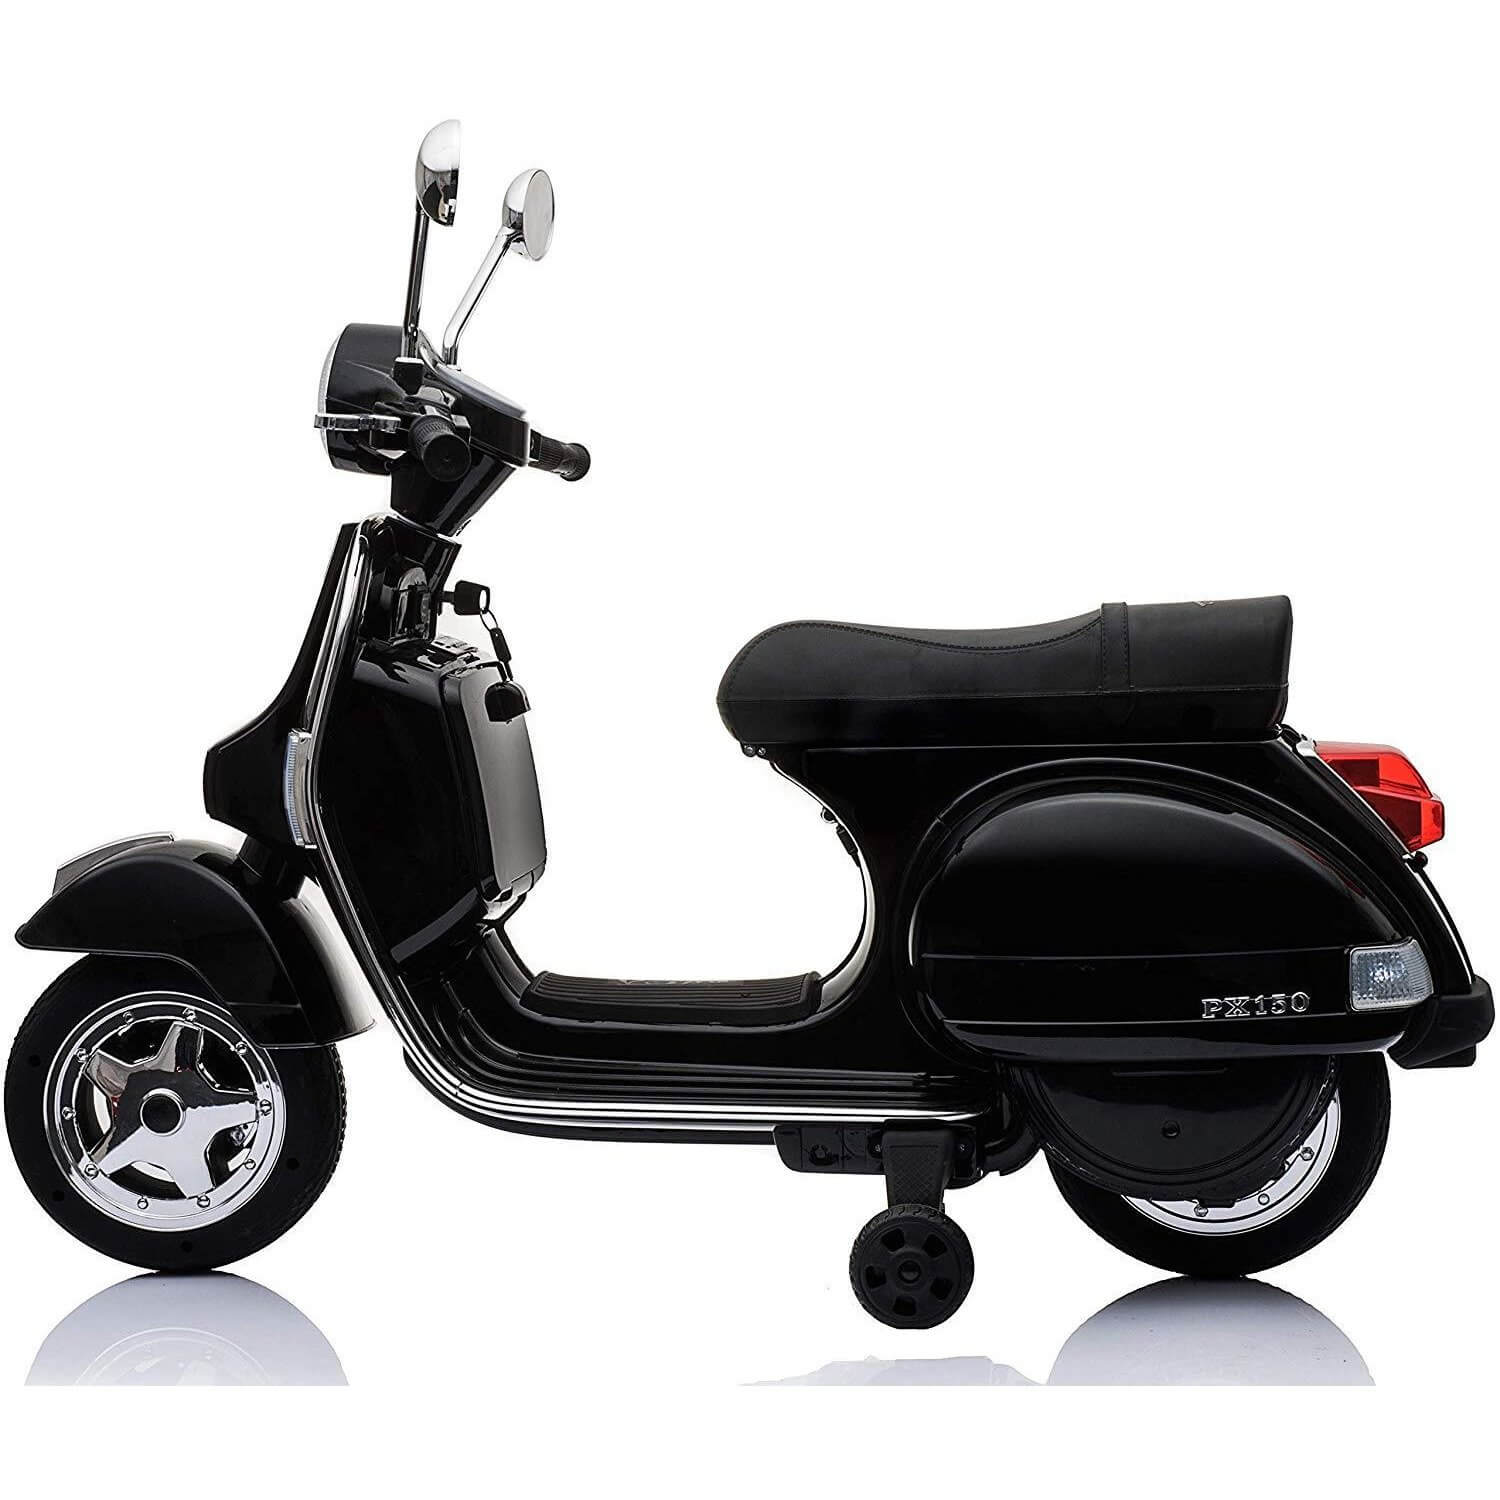 Raf  Ride on genuine Licensed Vespa PX150 kids scooter for kids - rafplay